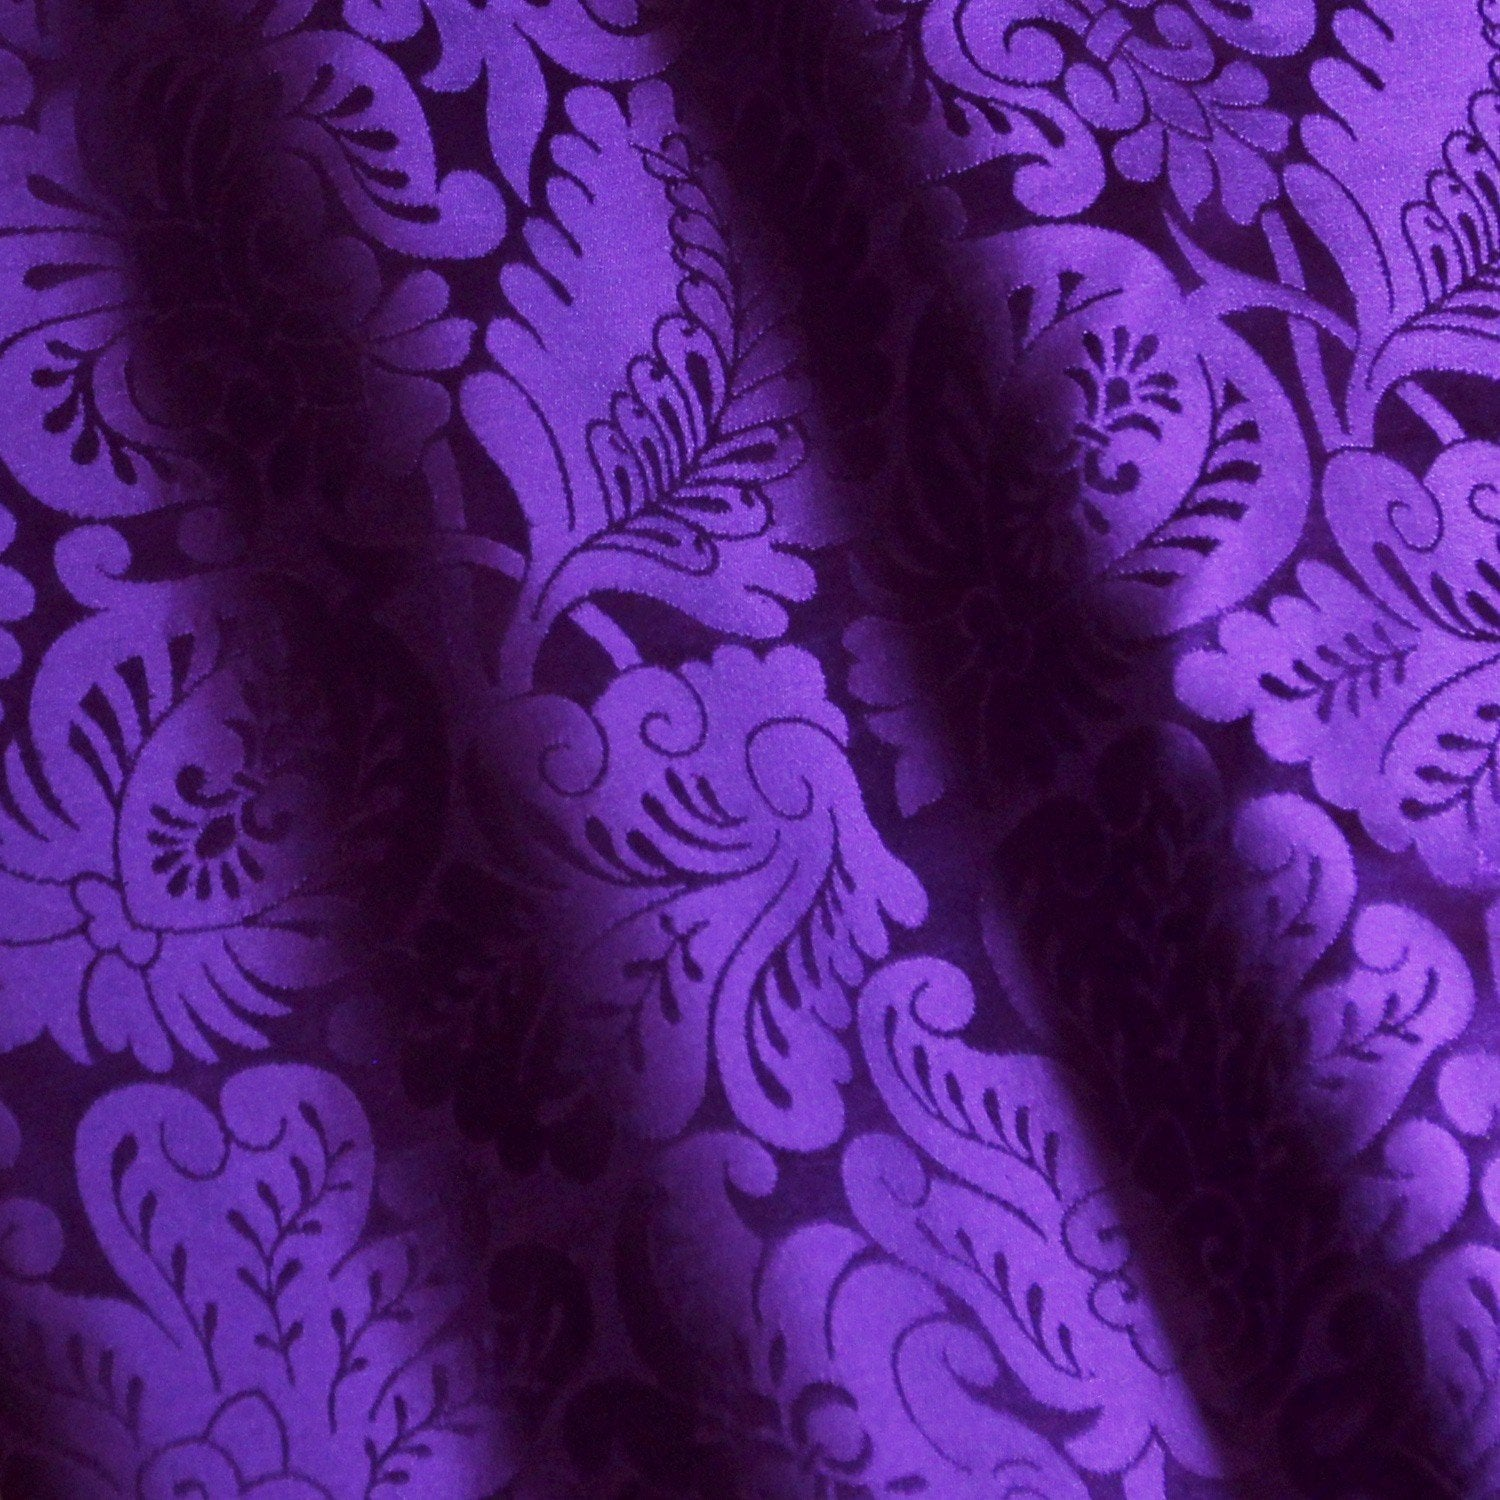 Holbein Silk Damask - Royal Purple - Watts & Co. (international)